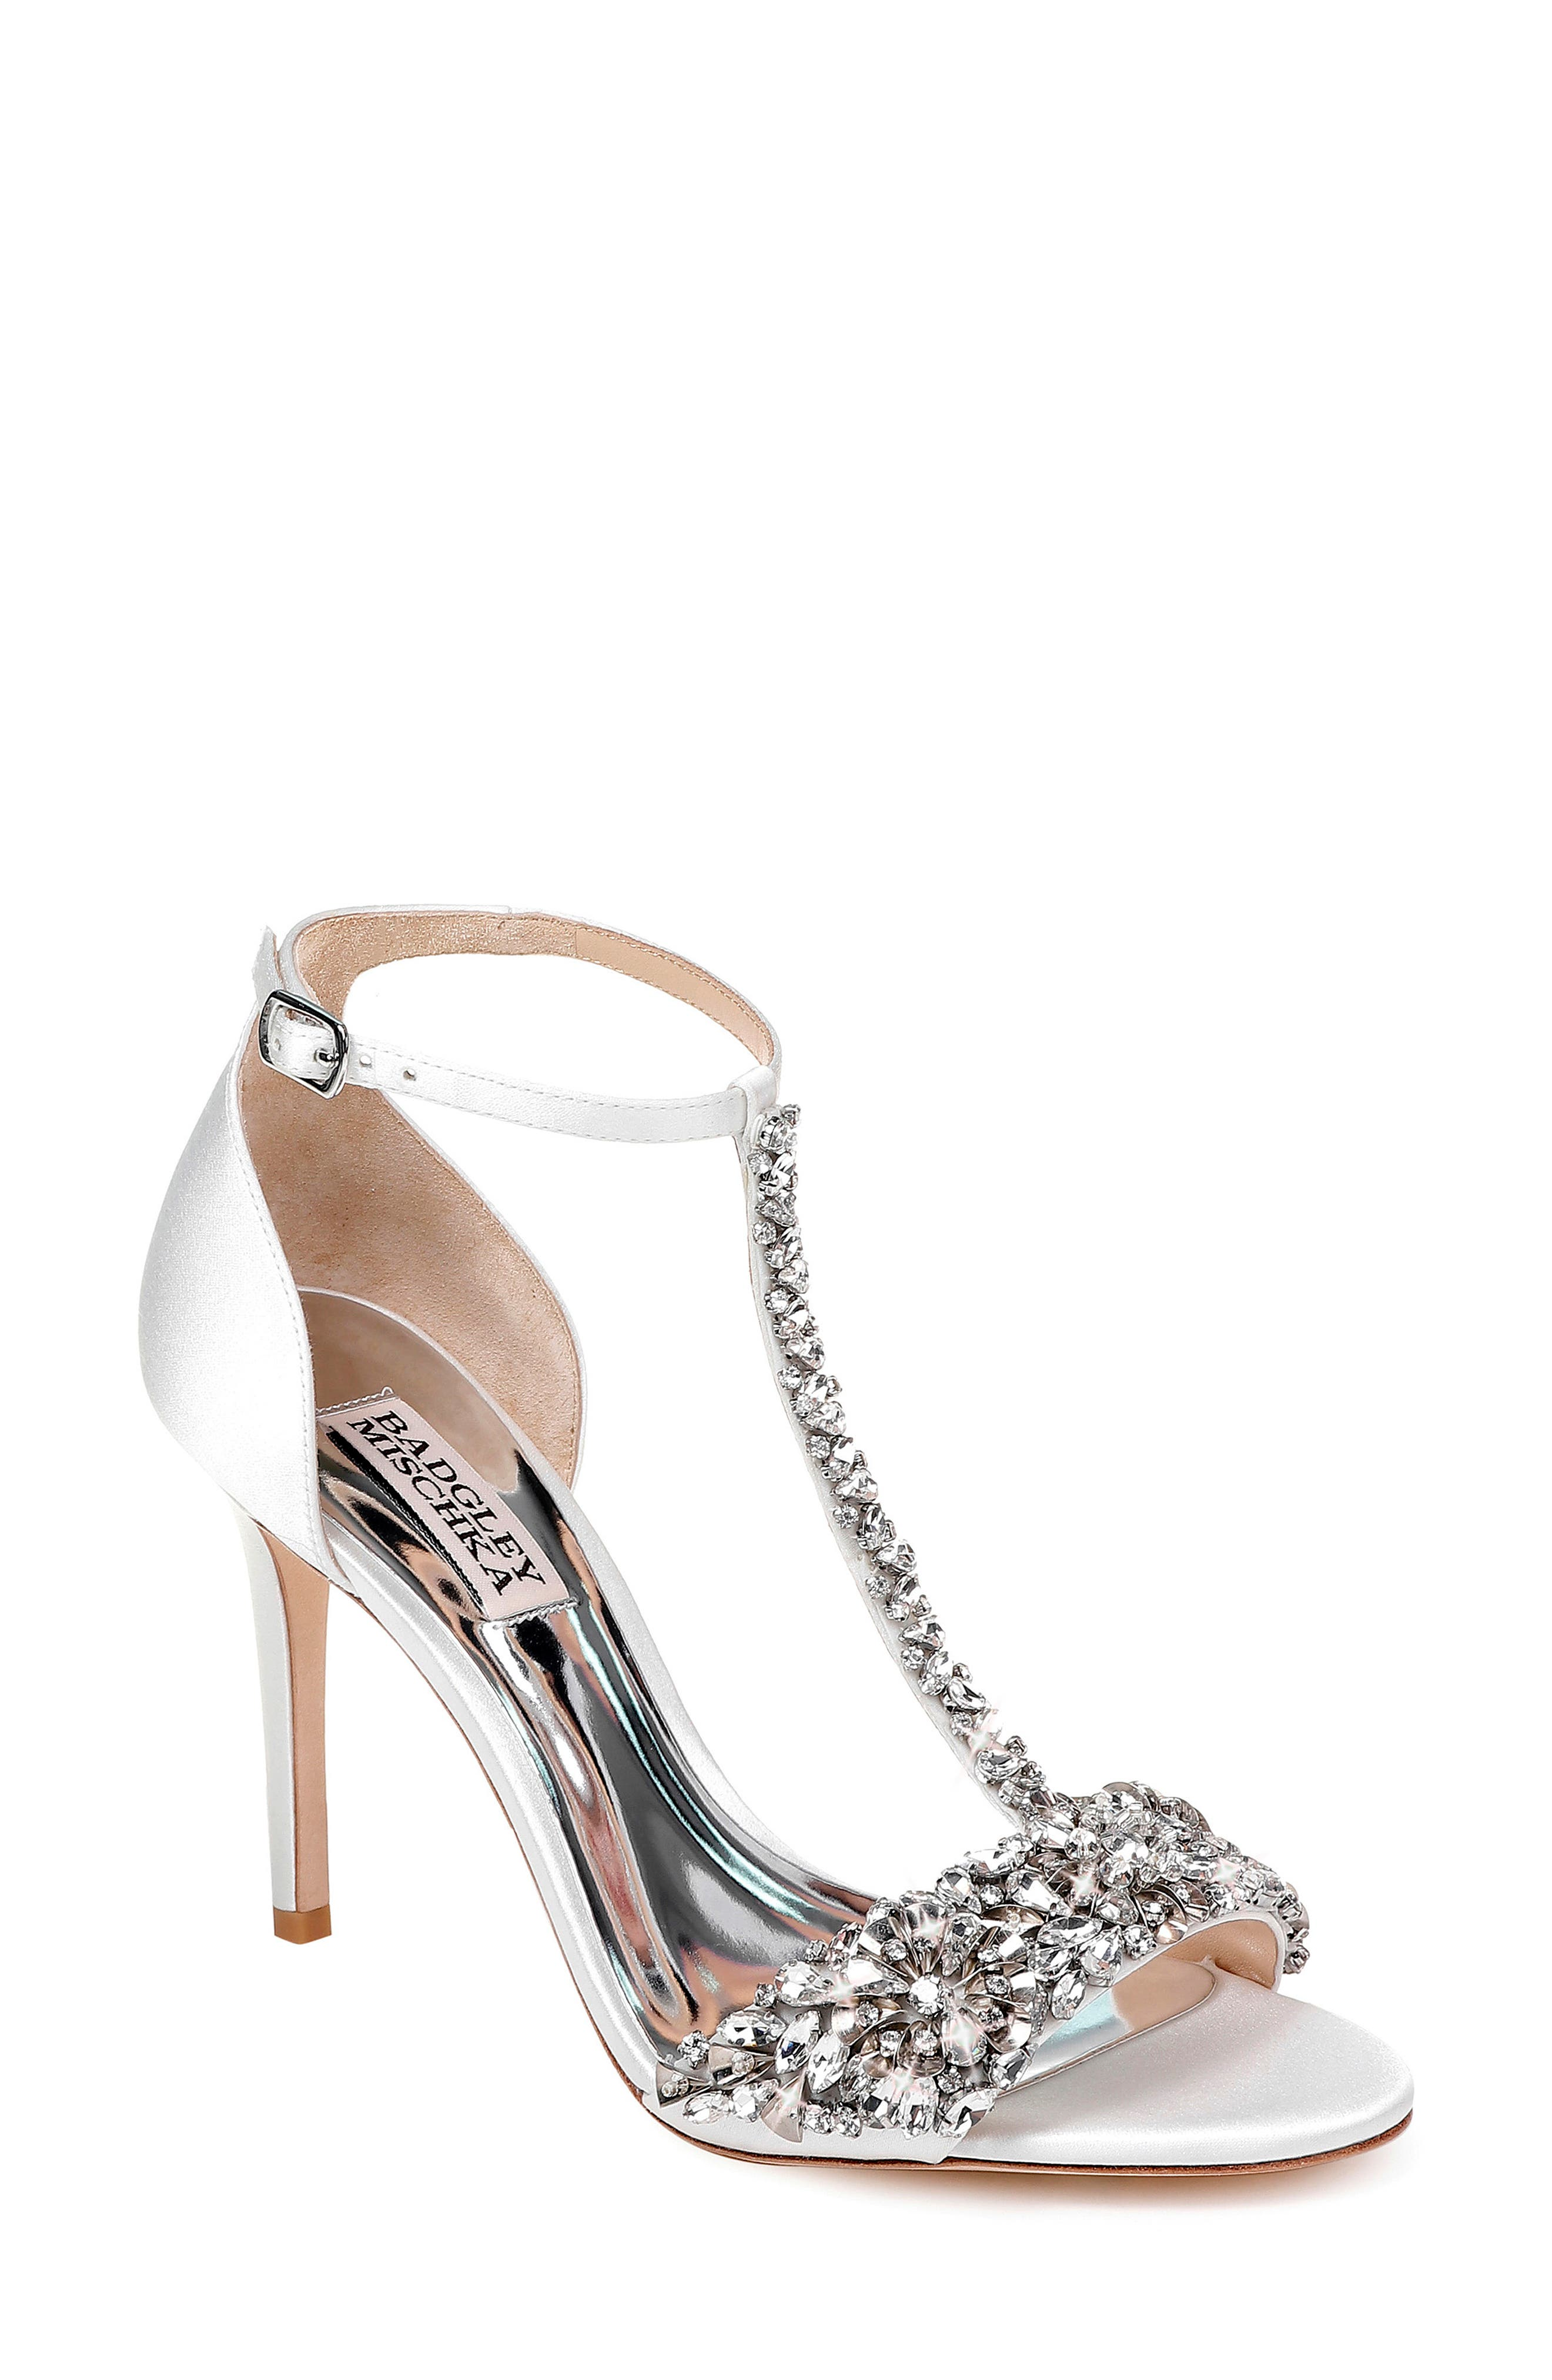 BADGLEY MISCHKA COLLECTION, Badgley Mischka Crystal Embellished Sandal, Main thumbnail 1, color, SOFT WHITE SATIN